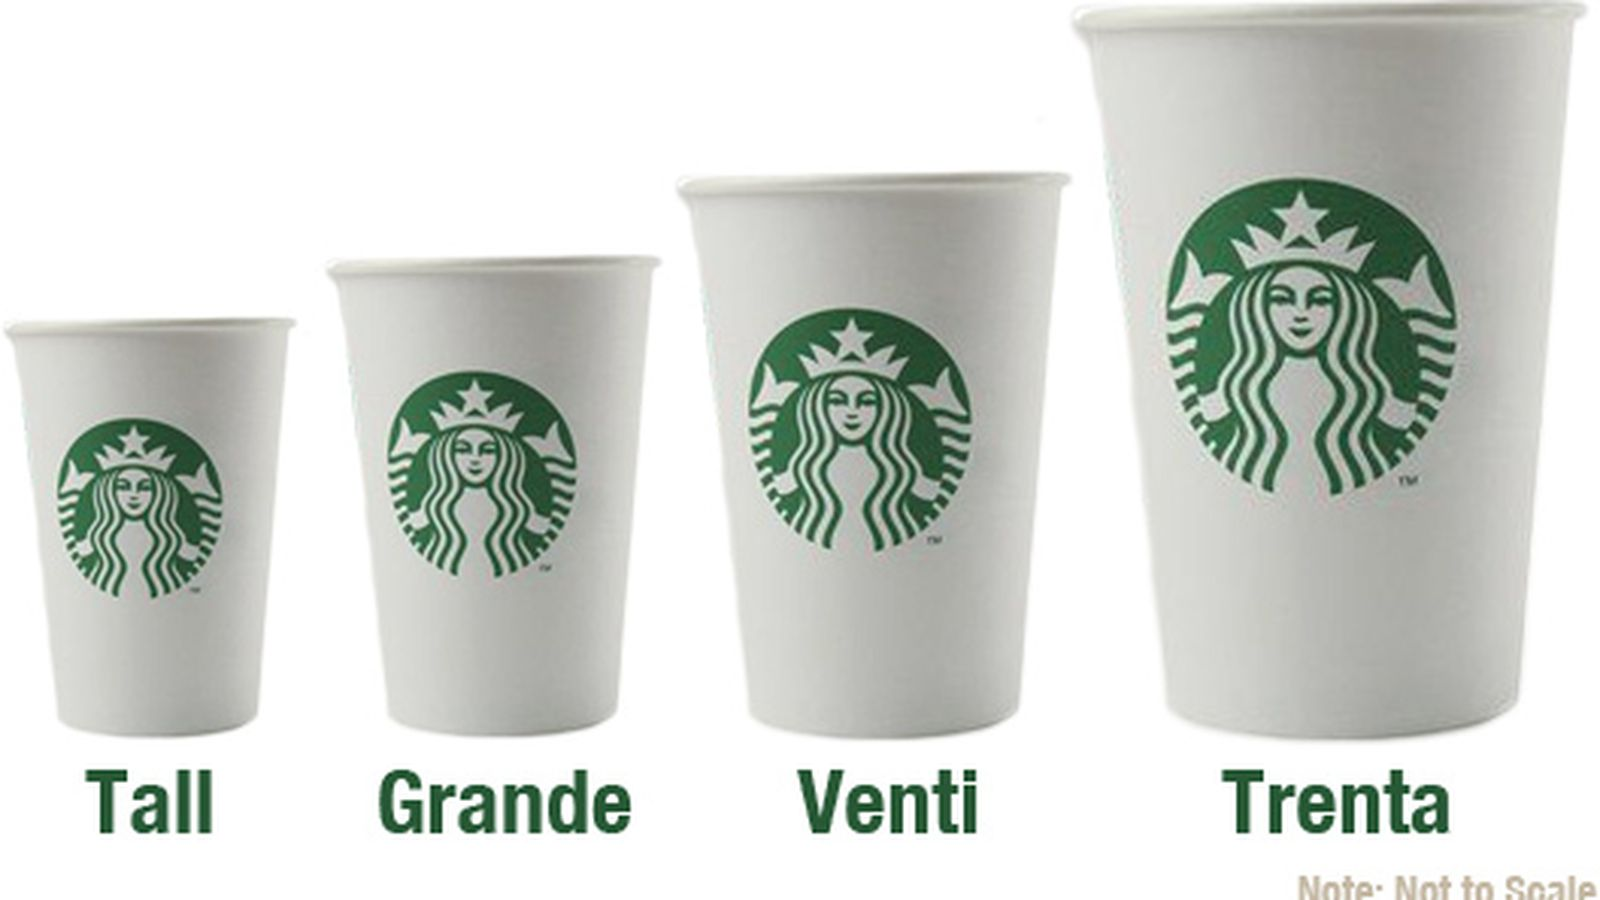 starbucks-coffee-cups-sizes-tall-grande-venti-trenta.0.jpg